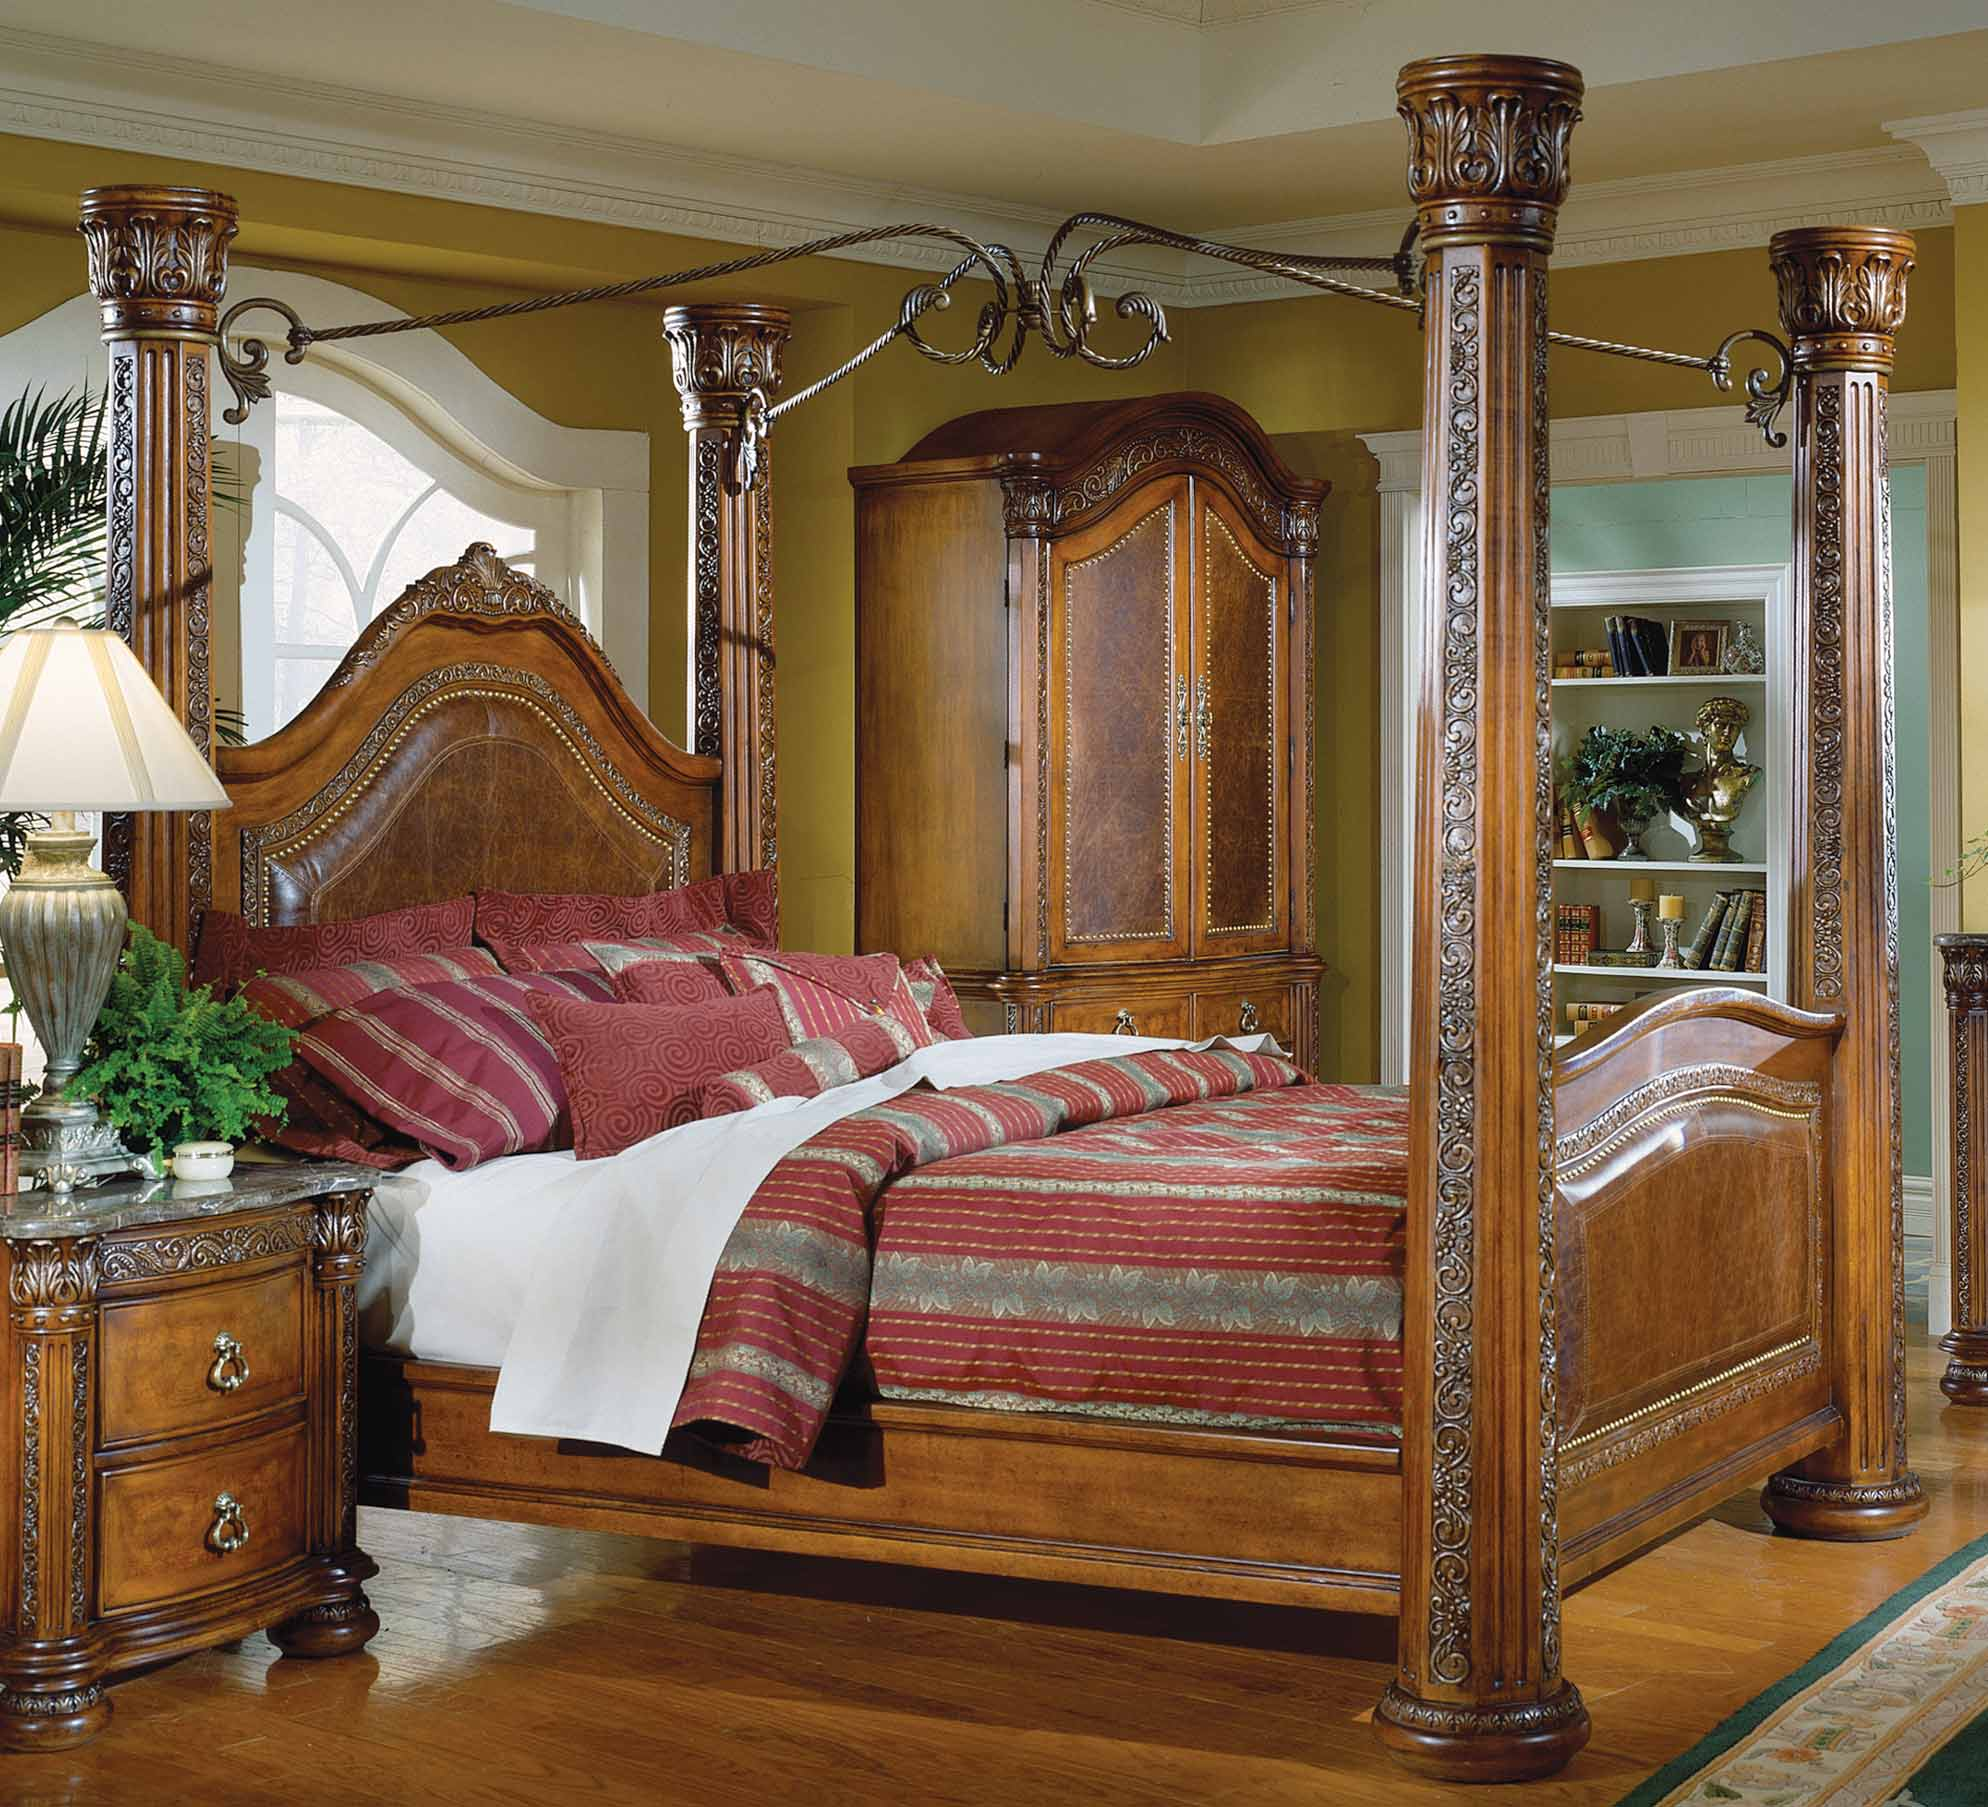 Homelegance Spanish Hills Canopy Bed with Leather 851-1